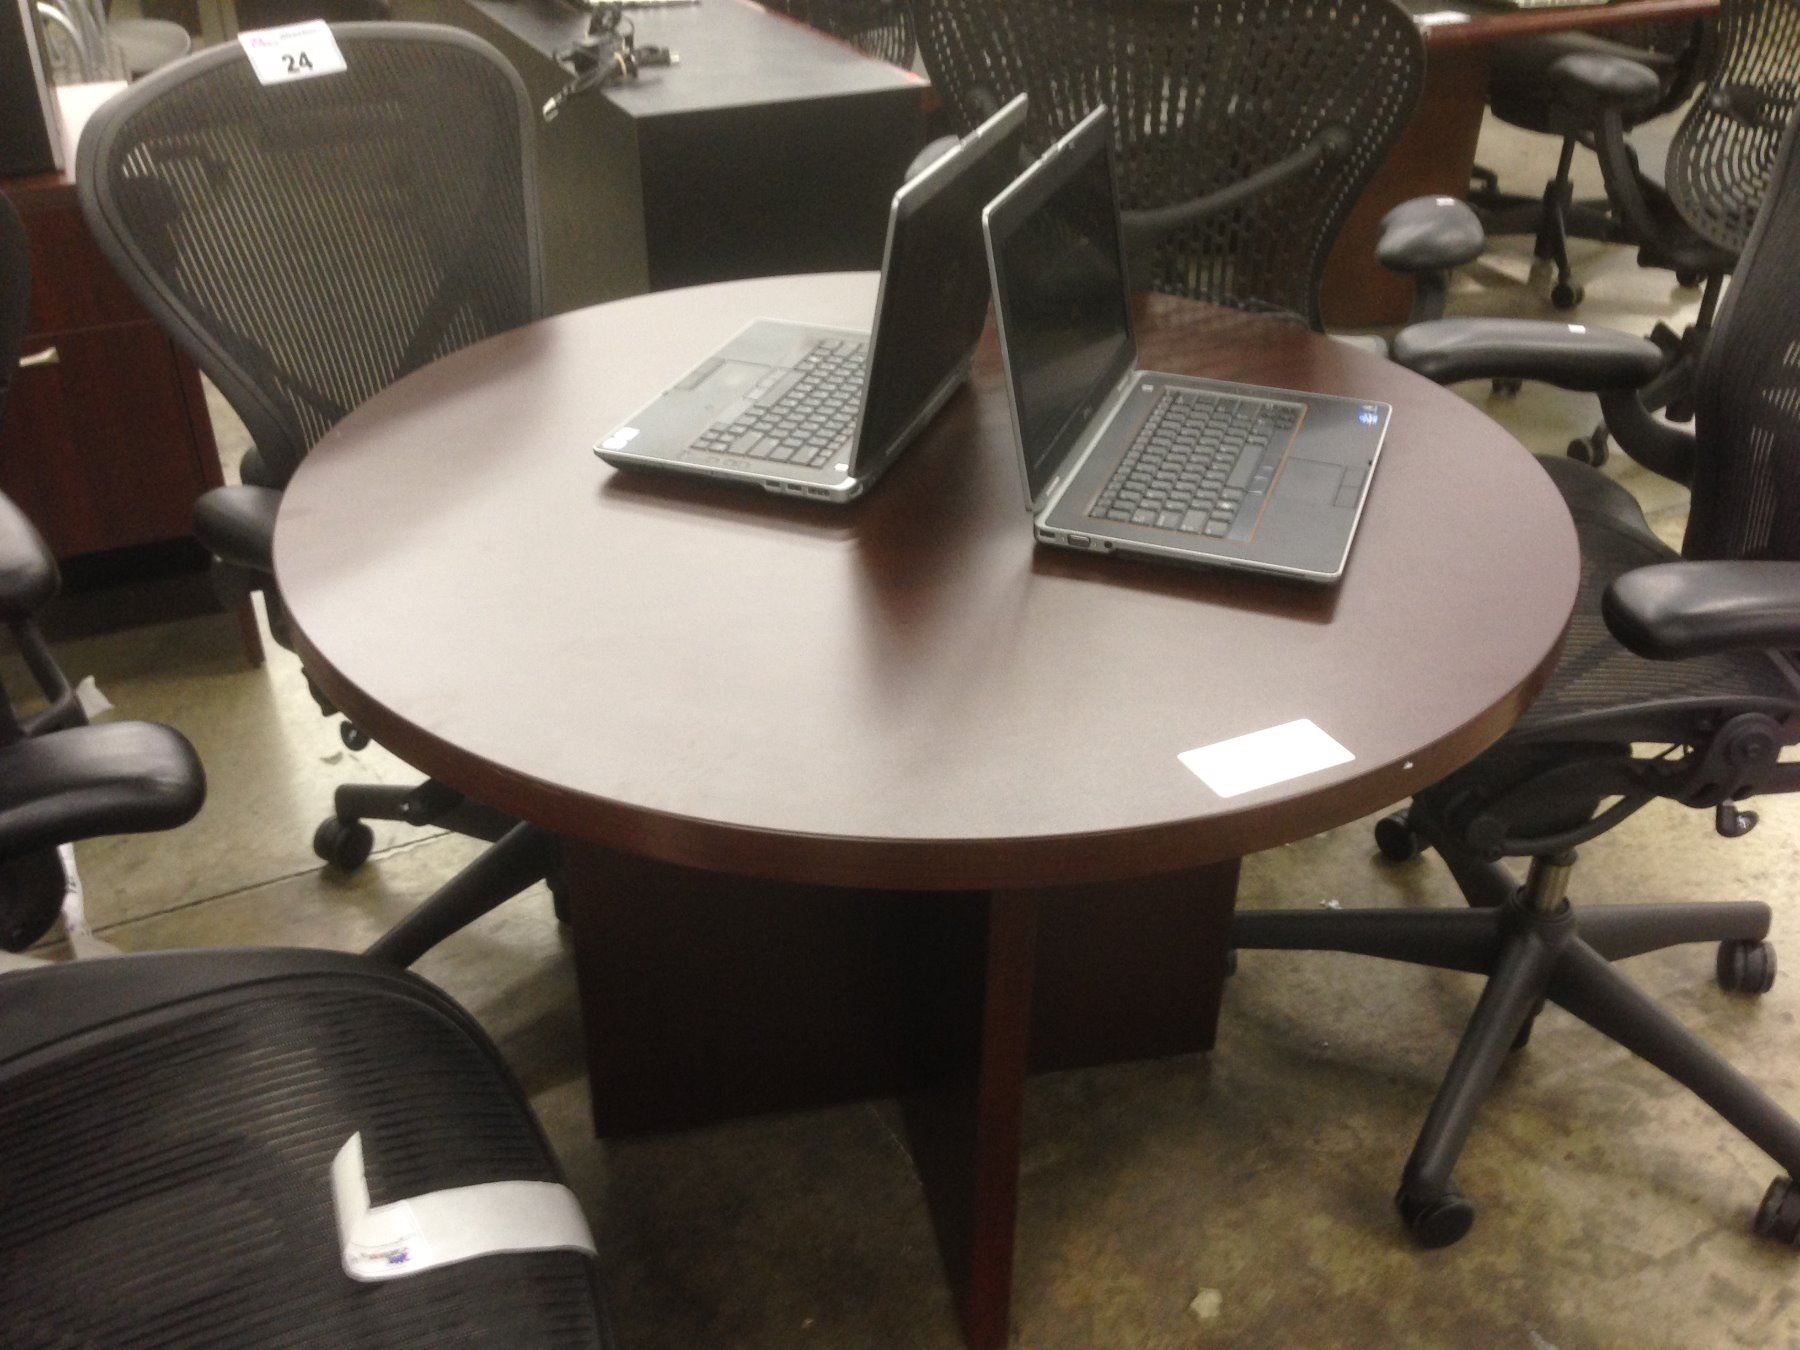 MAHOGANY ROUND CONFERENCE TABLE - Round conference table for 4